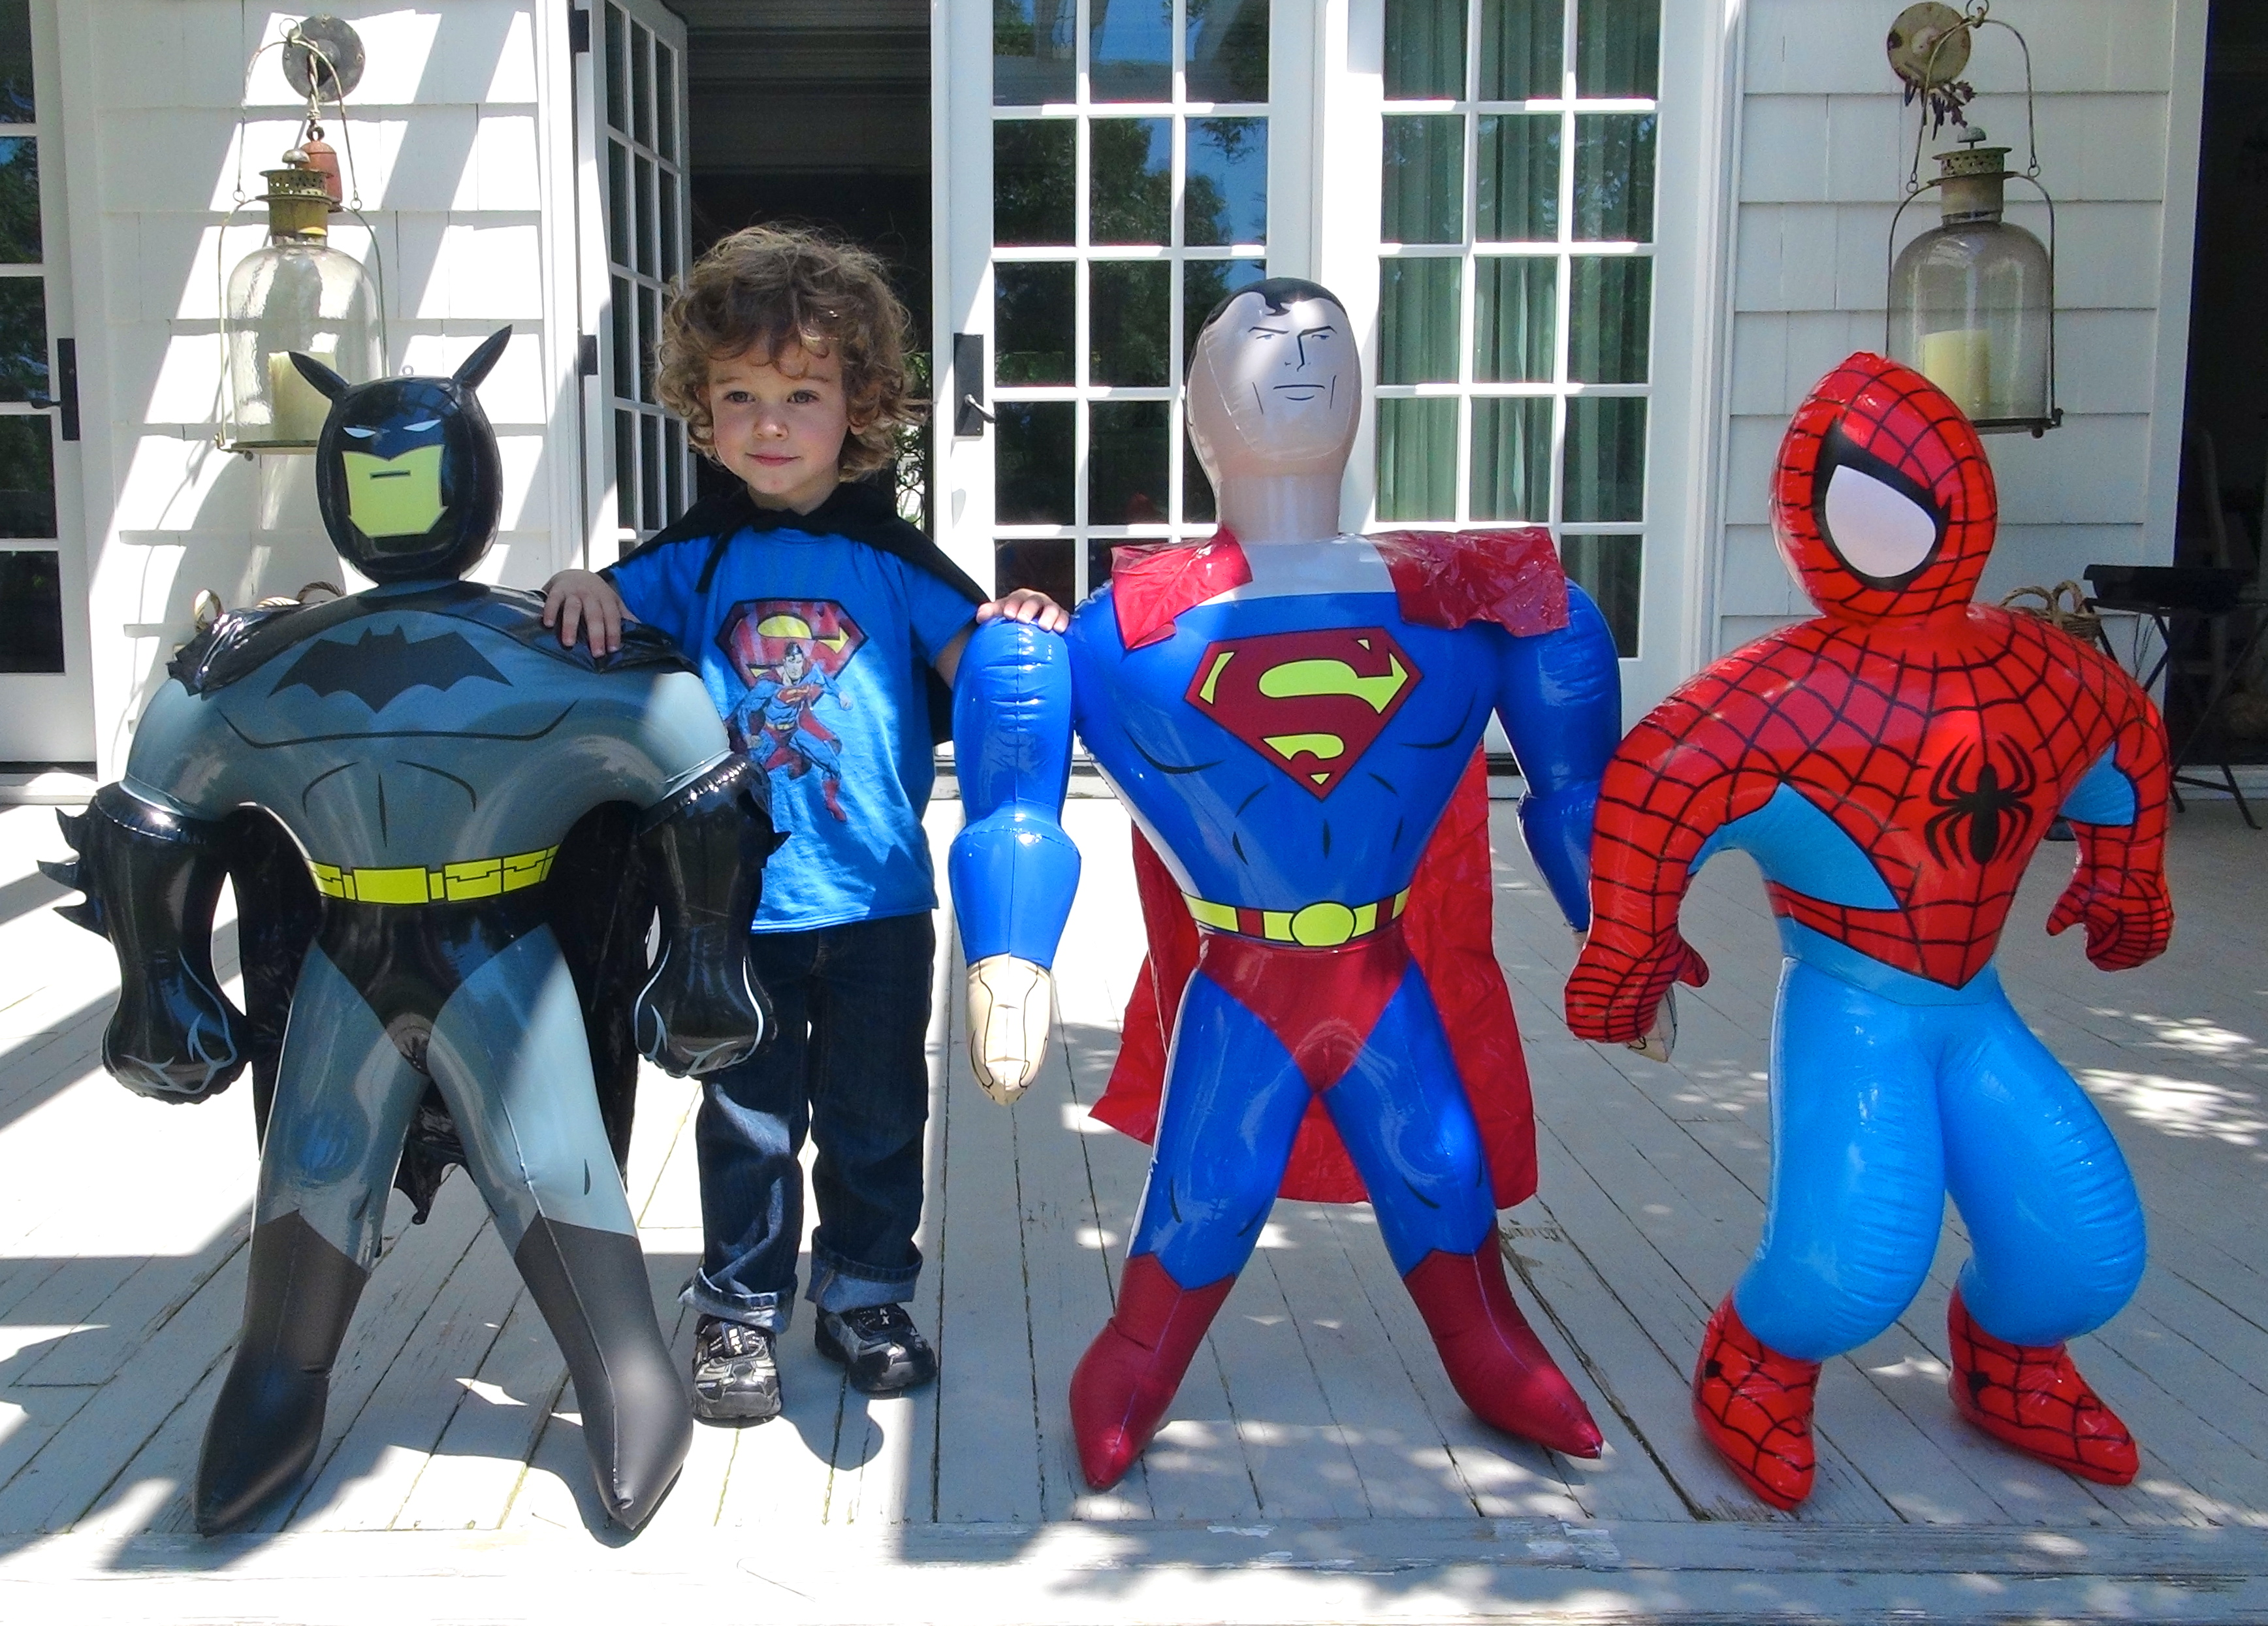 Kids Toys Action Figure: How To Plan A Superhero Halloween Party For Kids!